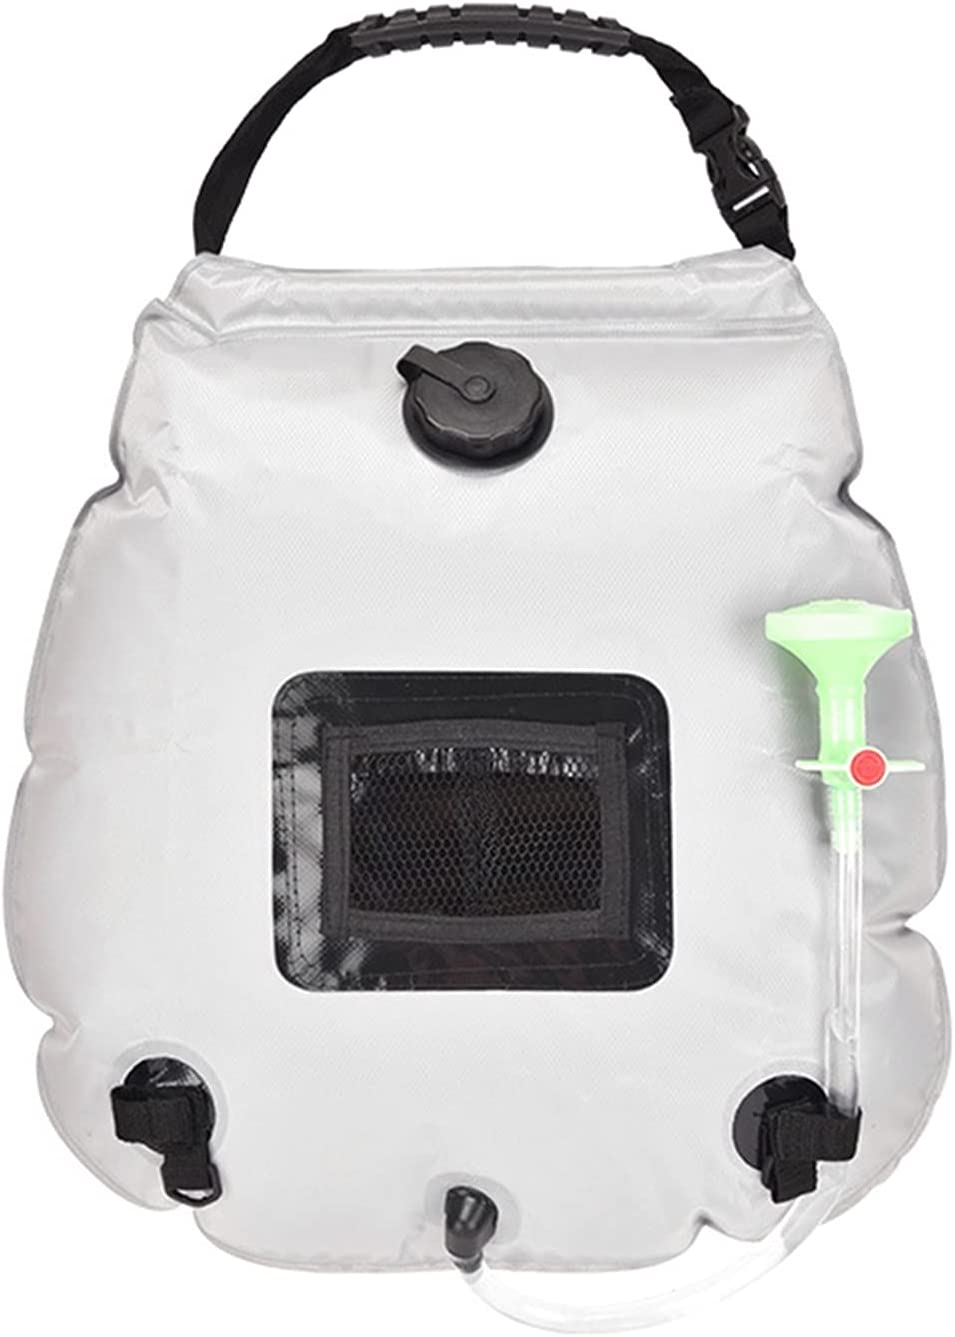 Giplar Water Bags 20L Outdoor Camping New product type Solar Bag Shower He Selling and selling Hiking